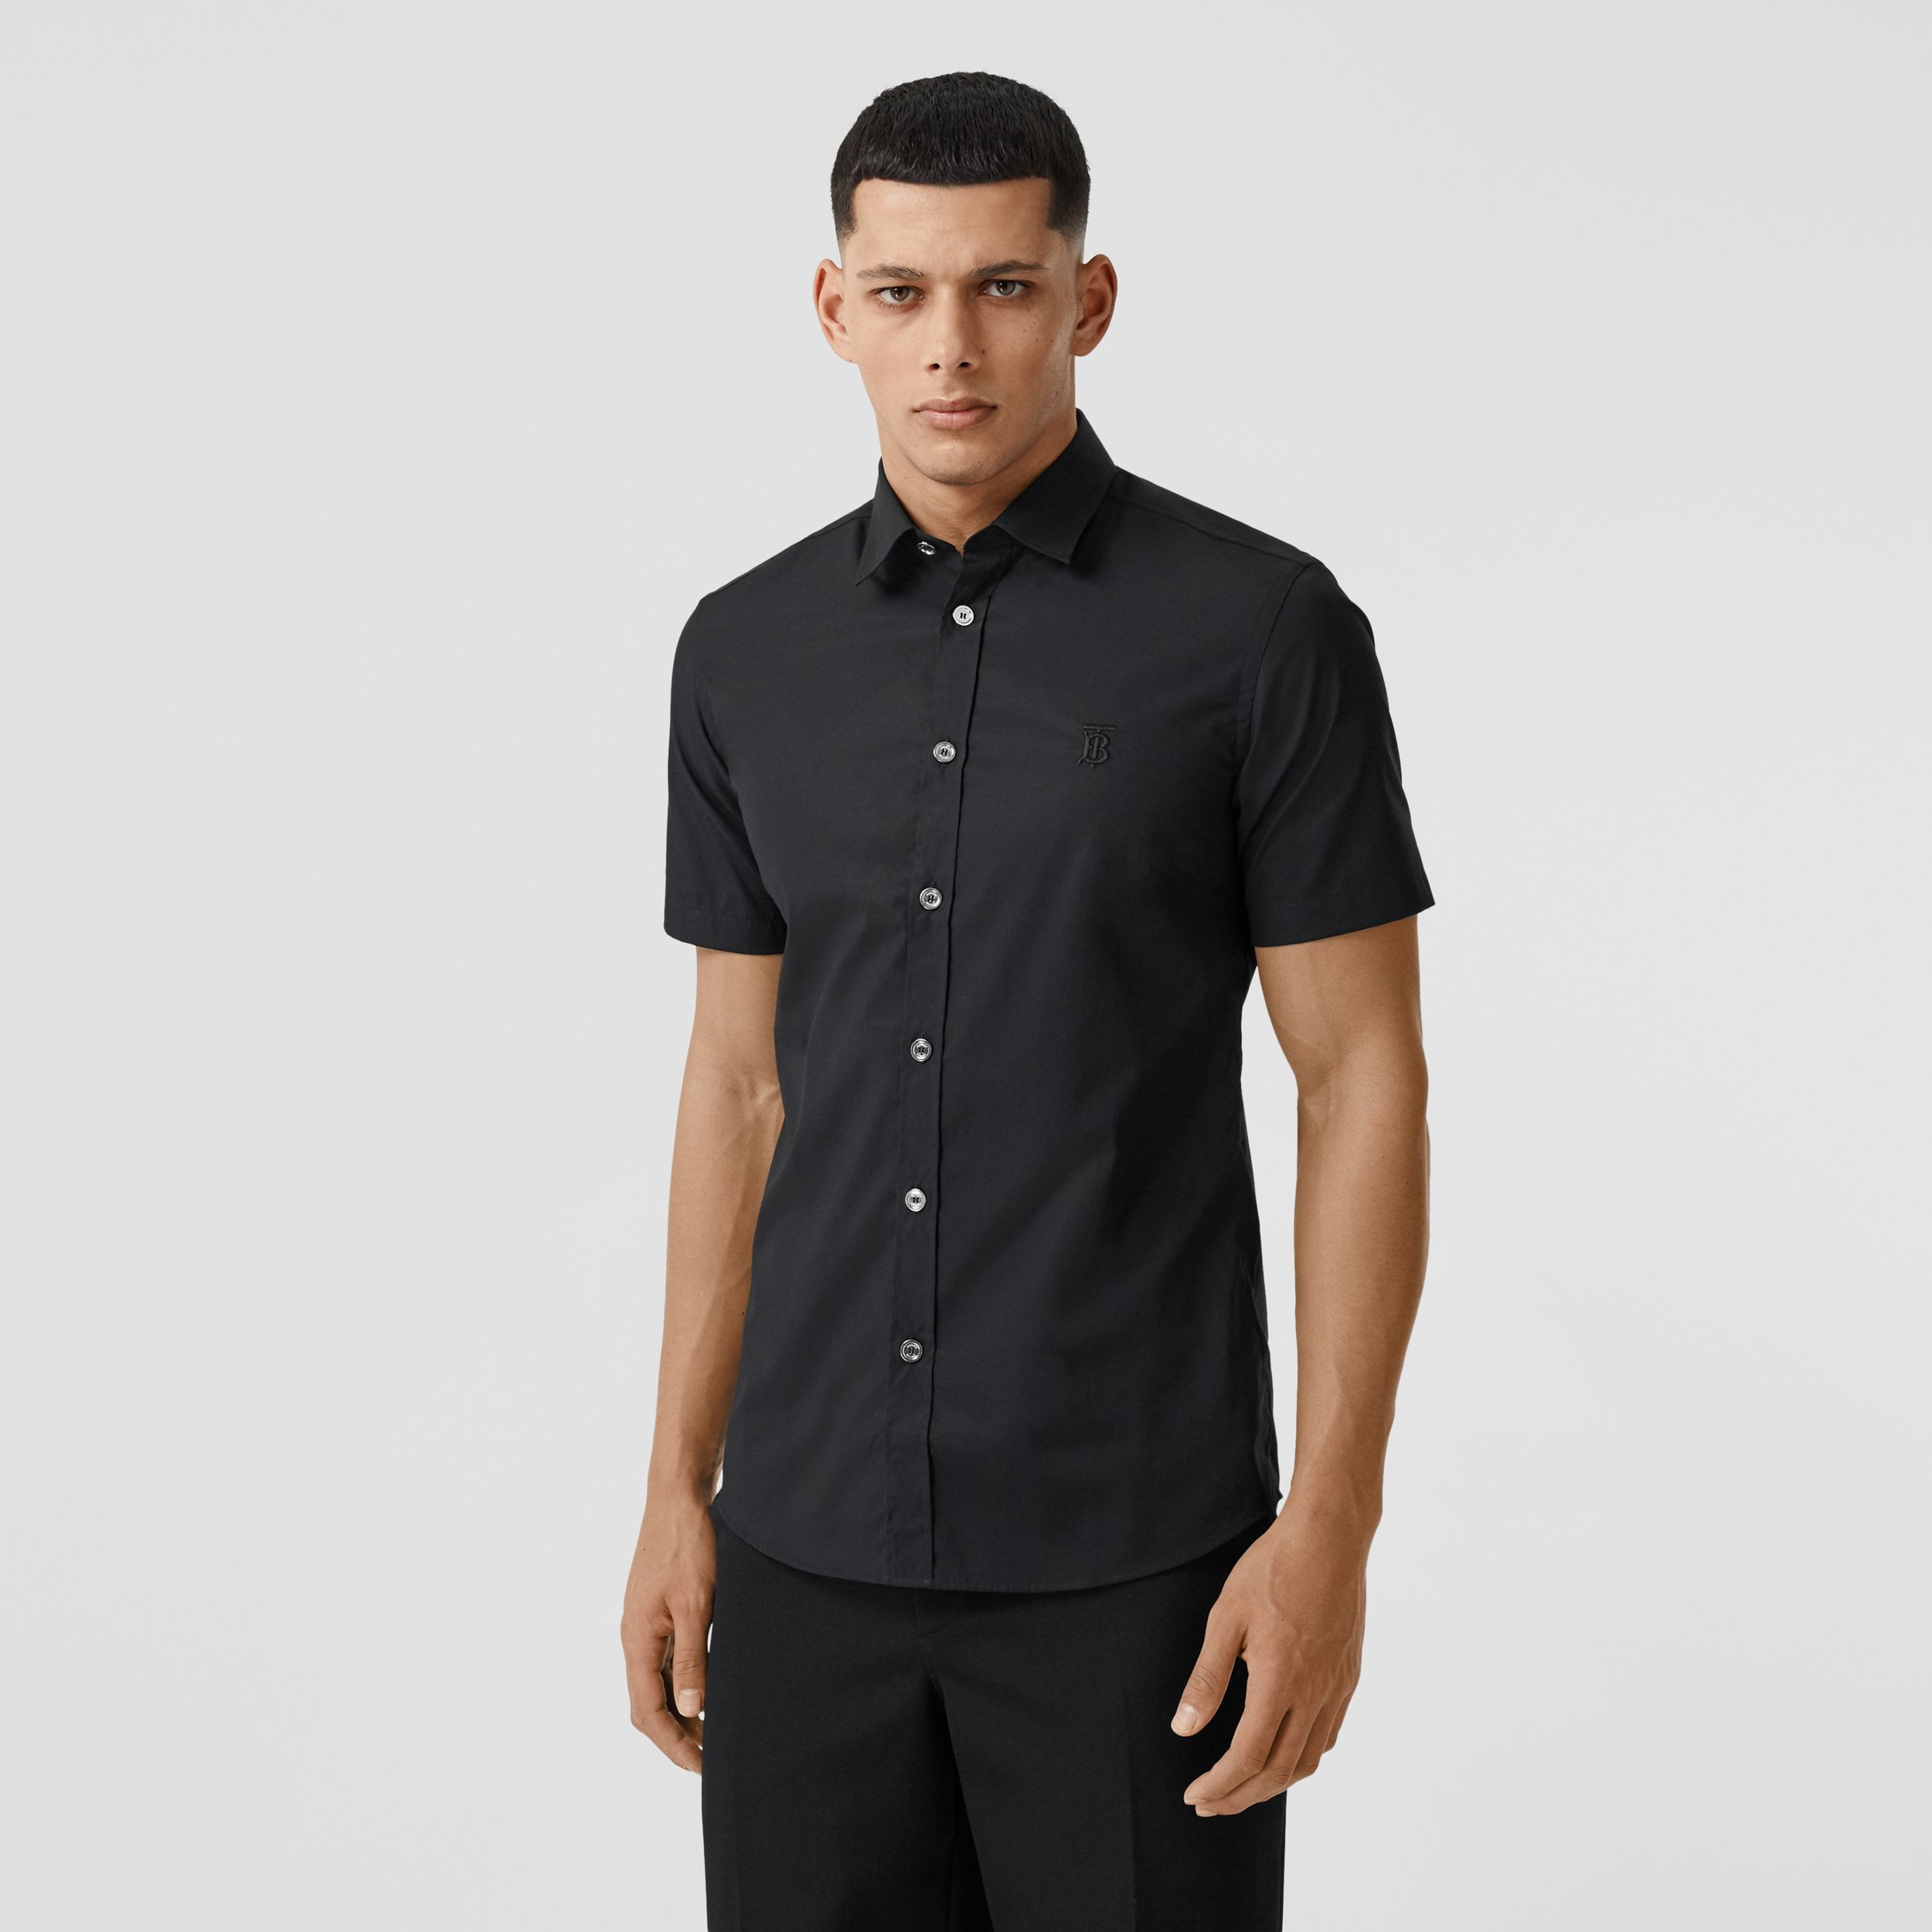 Short-sleeve Monogram Motif Stretch Cotton Shirt in Black - Men | Burberry United Kingdom - 1